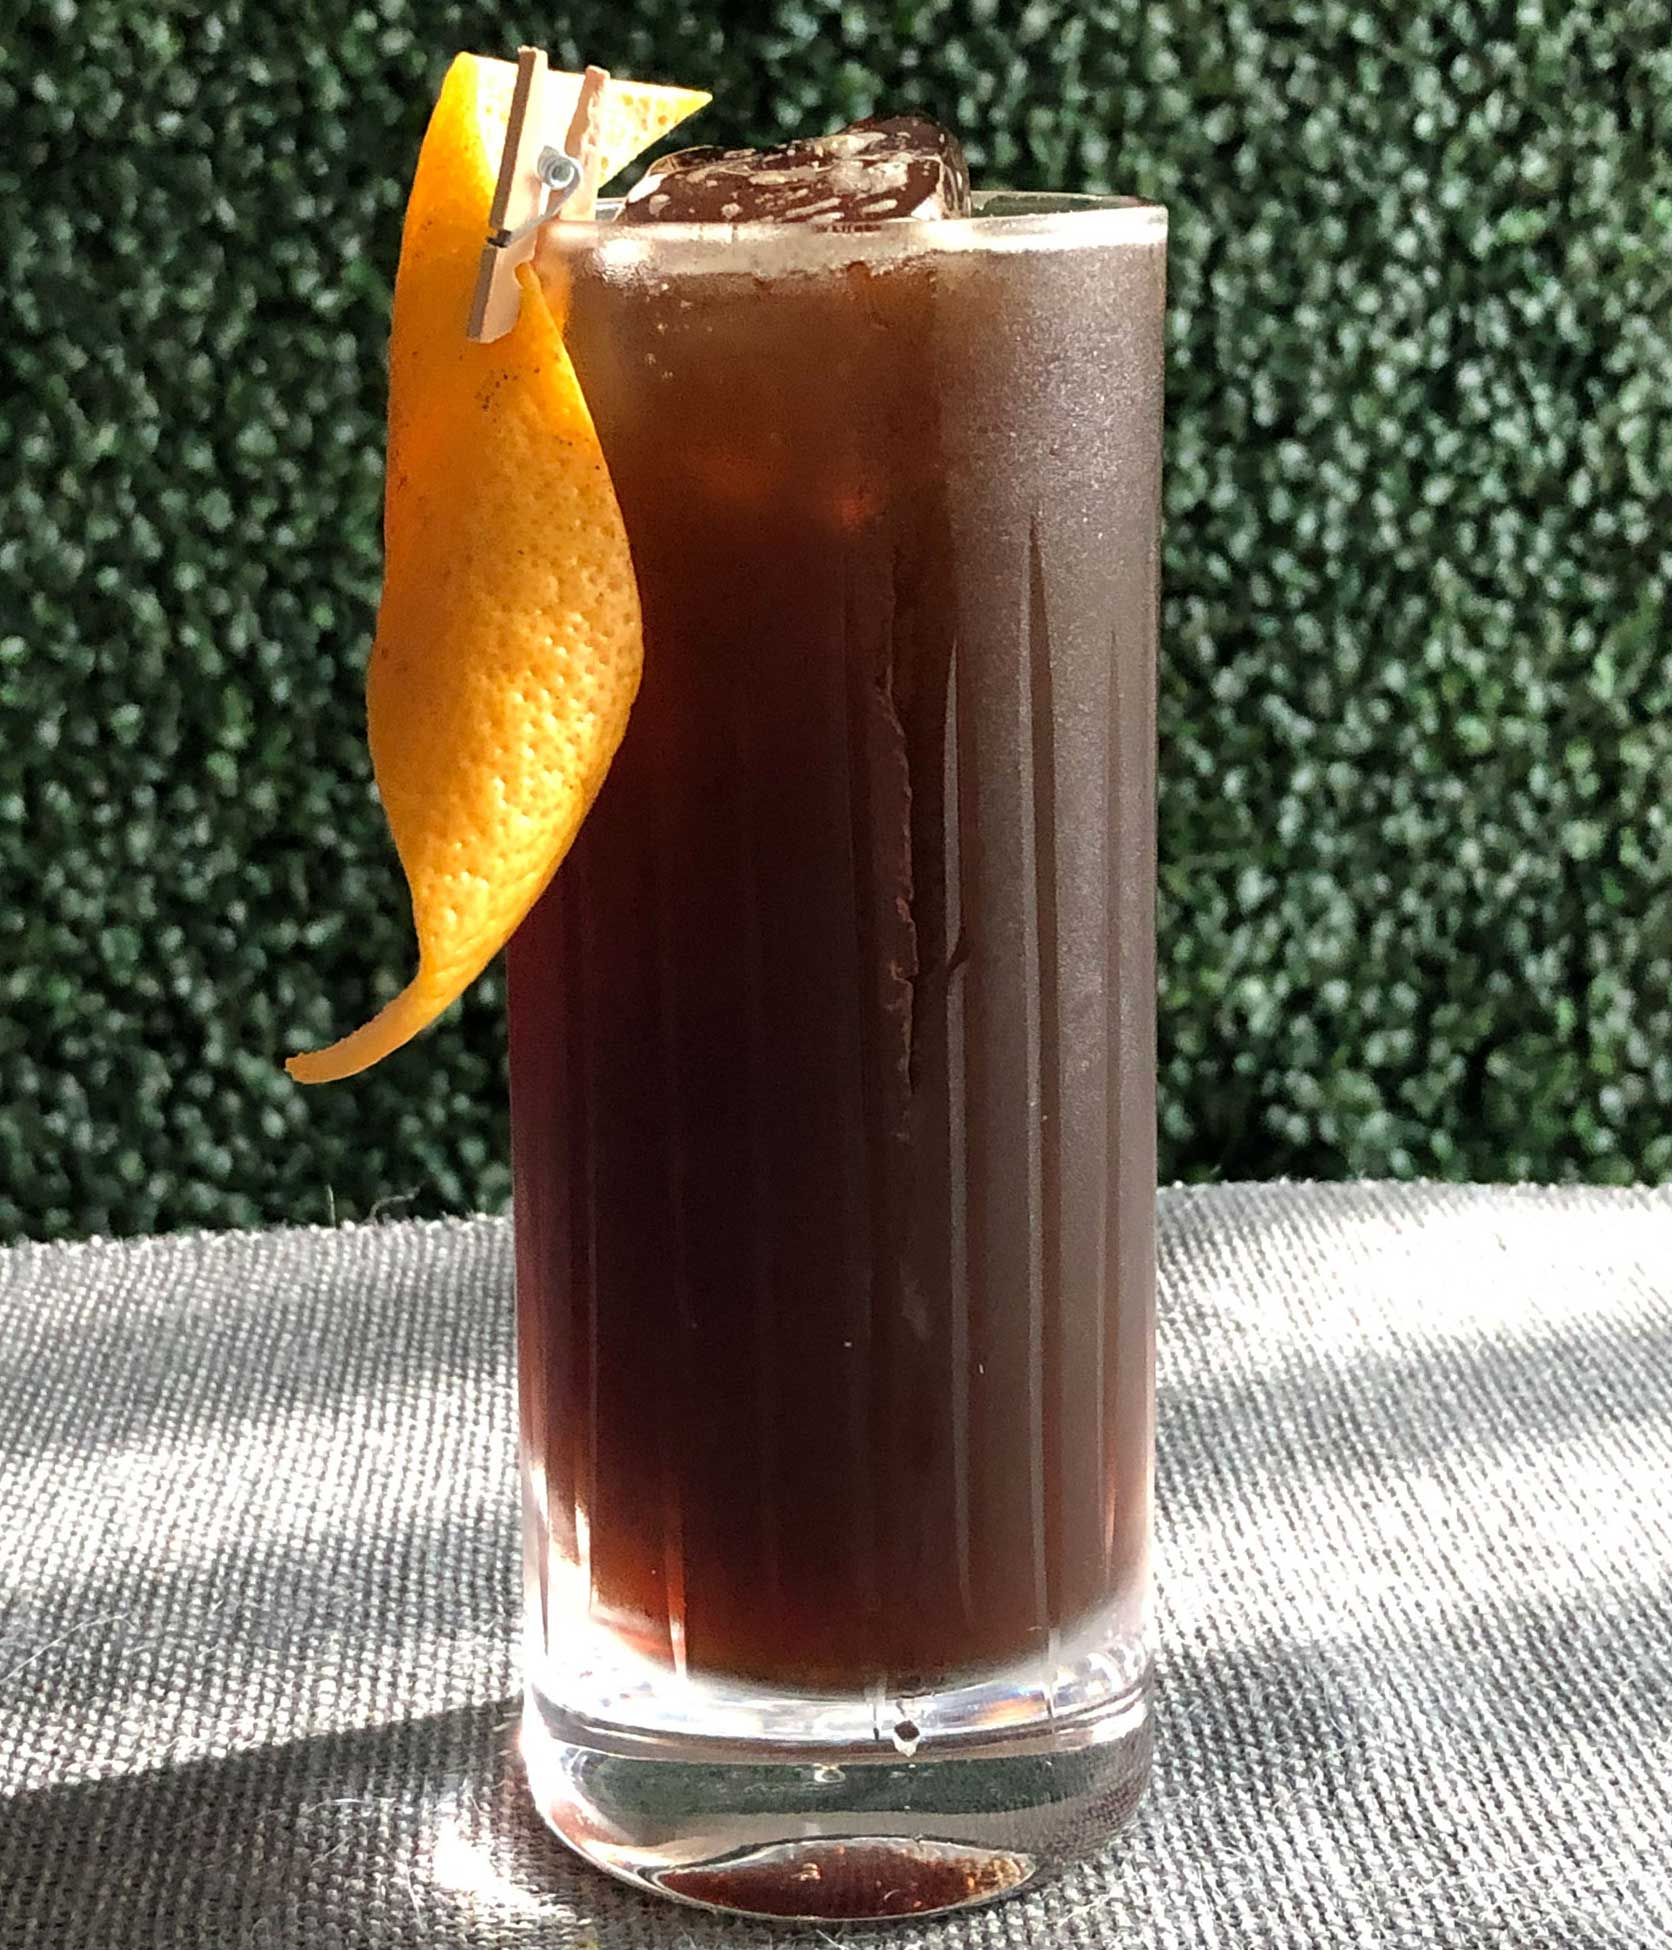 An example of the Poker Face, the mixed drink (cocktail) featuring Fentimans Curiosity Cola, Elisir Novasalus, Salers Gentian Apéritif, and Zirbenz Stone Pine Liqueur of the Alps; photo by Lee Edwards